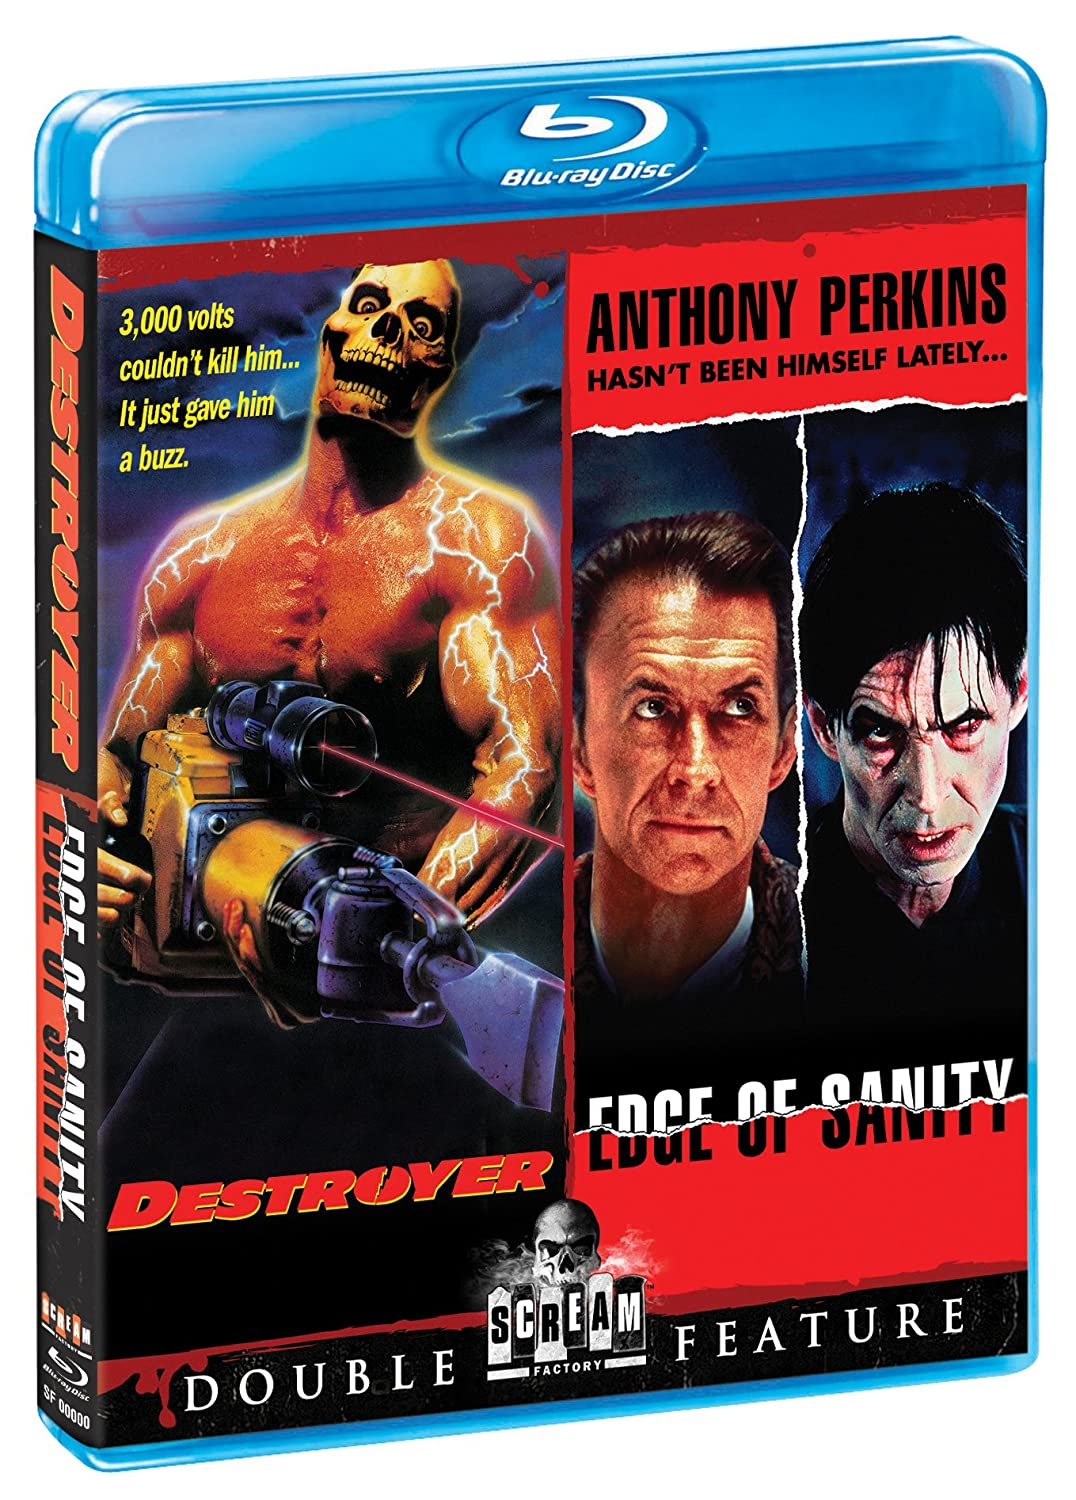 amazon com destroyer edge of sanity blu ray anthony perkins amazon com destroyer edge of sanity blu ray anthony perkins robert kirk deborah foreman movies tv